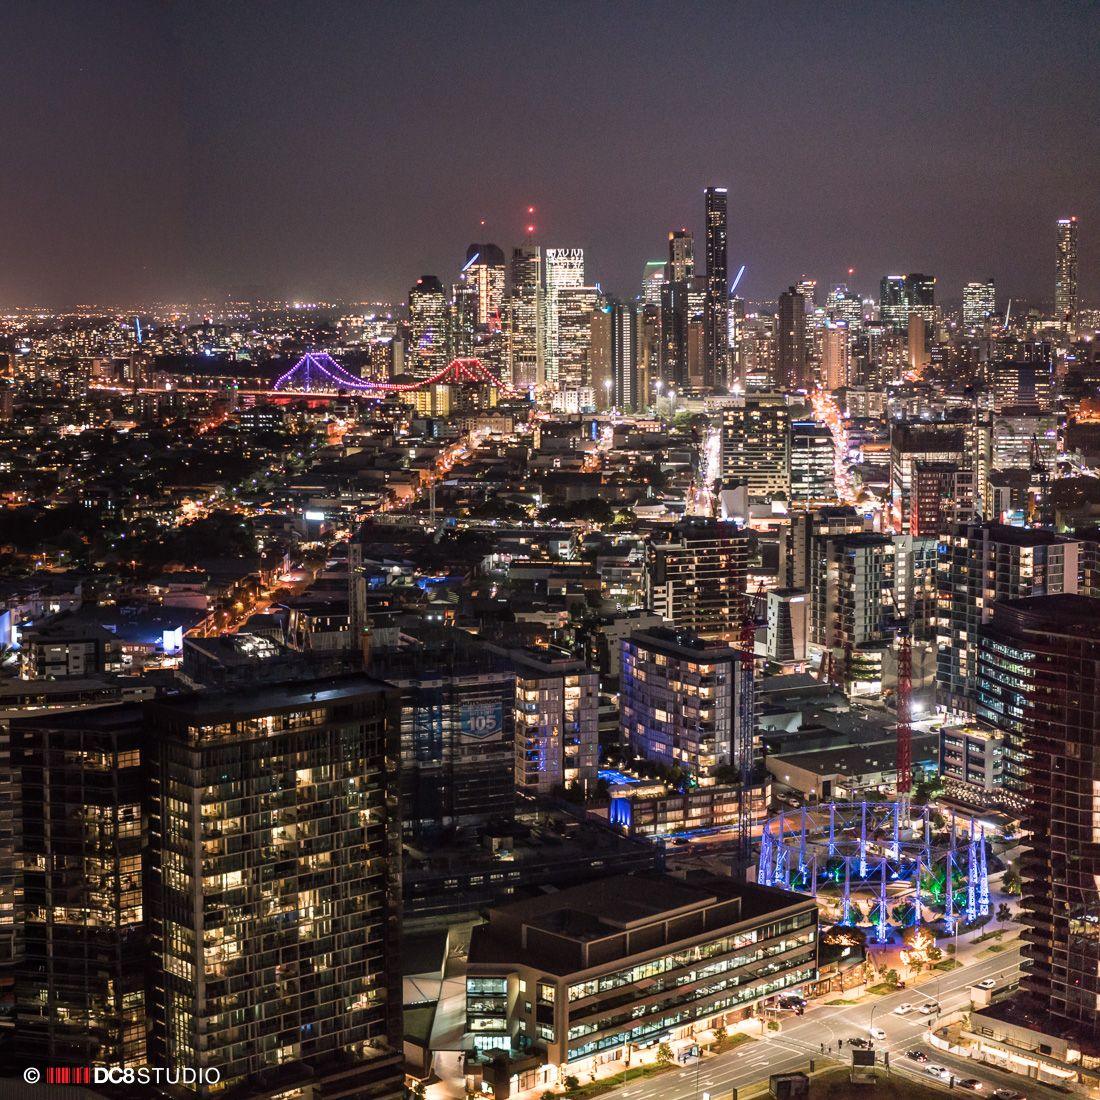 Client shoot of brisbane city at night drones eye view